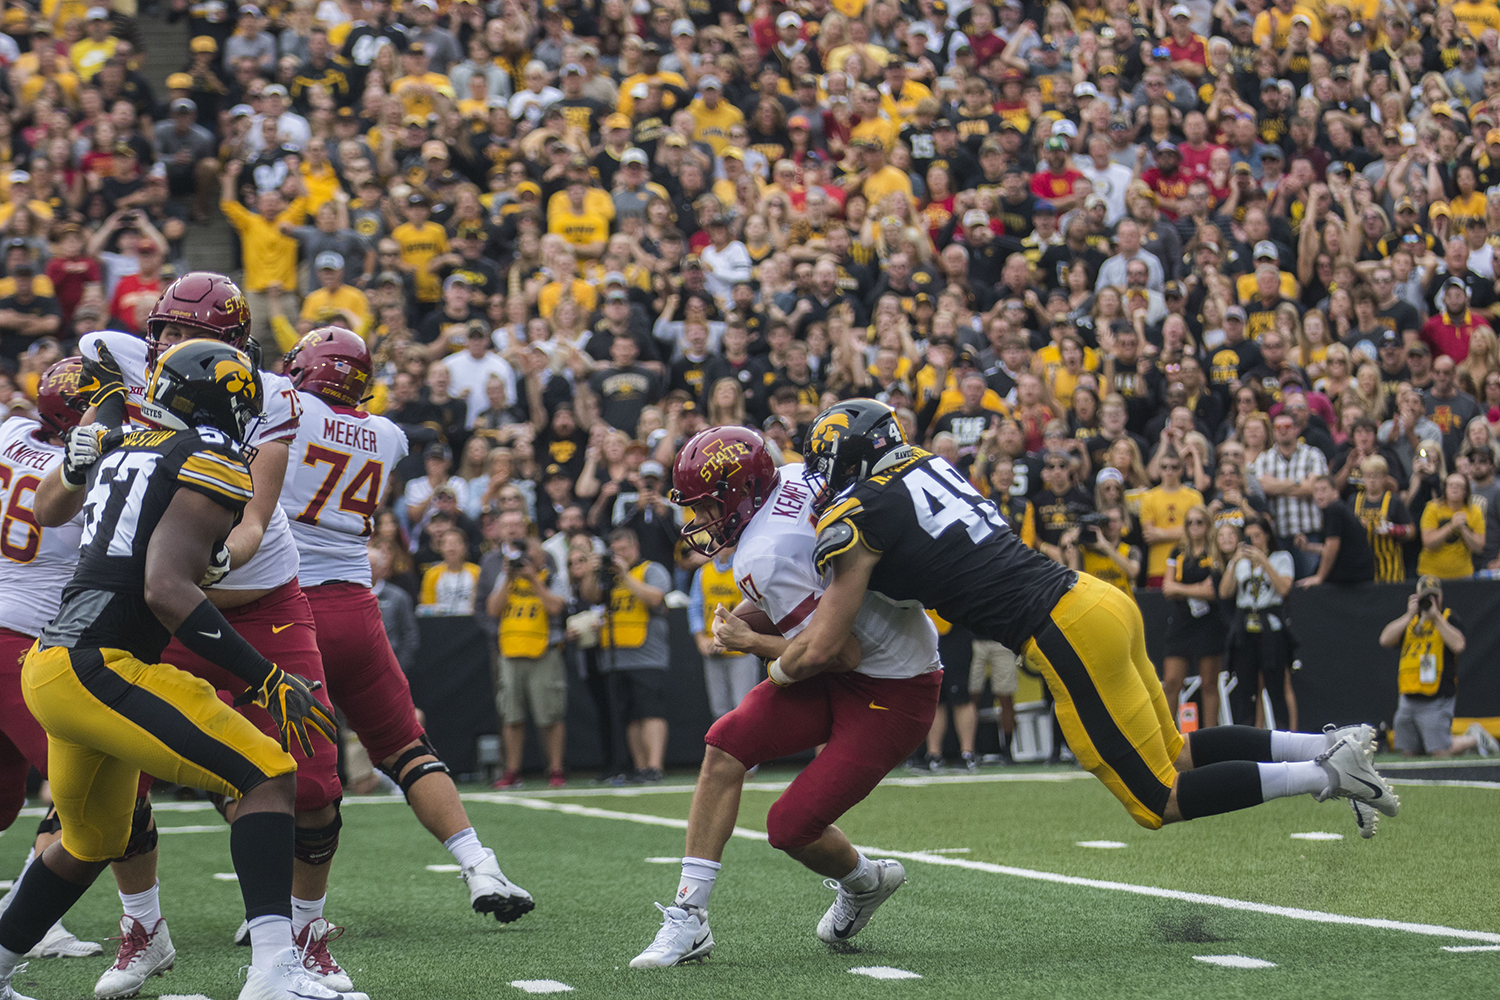 Iowa State quarterback Kyle Kempt gets sacked by Iowa linebacker Nick Niemann during the Iowa/Iowa State football game at Kinnick Stadium on Saturday, September 8, 2018. The Hawkeyes defeated the Cyclones, 13-3.